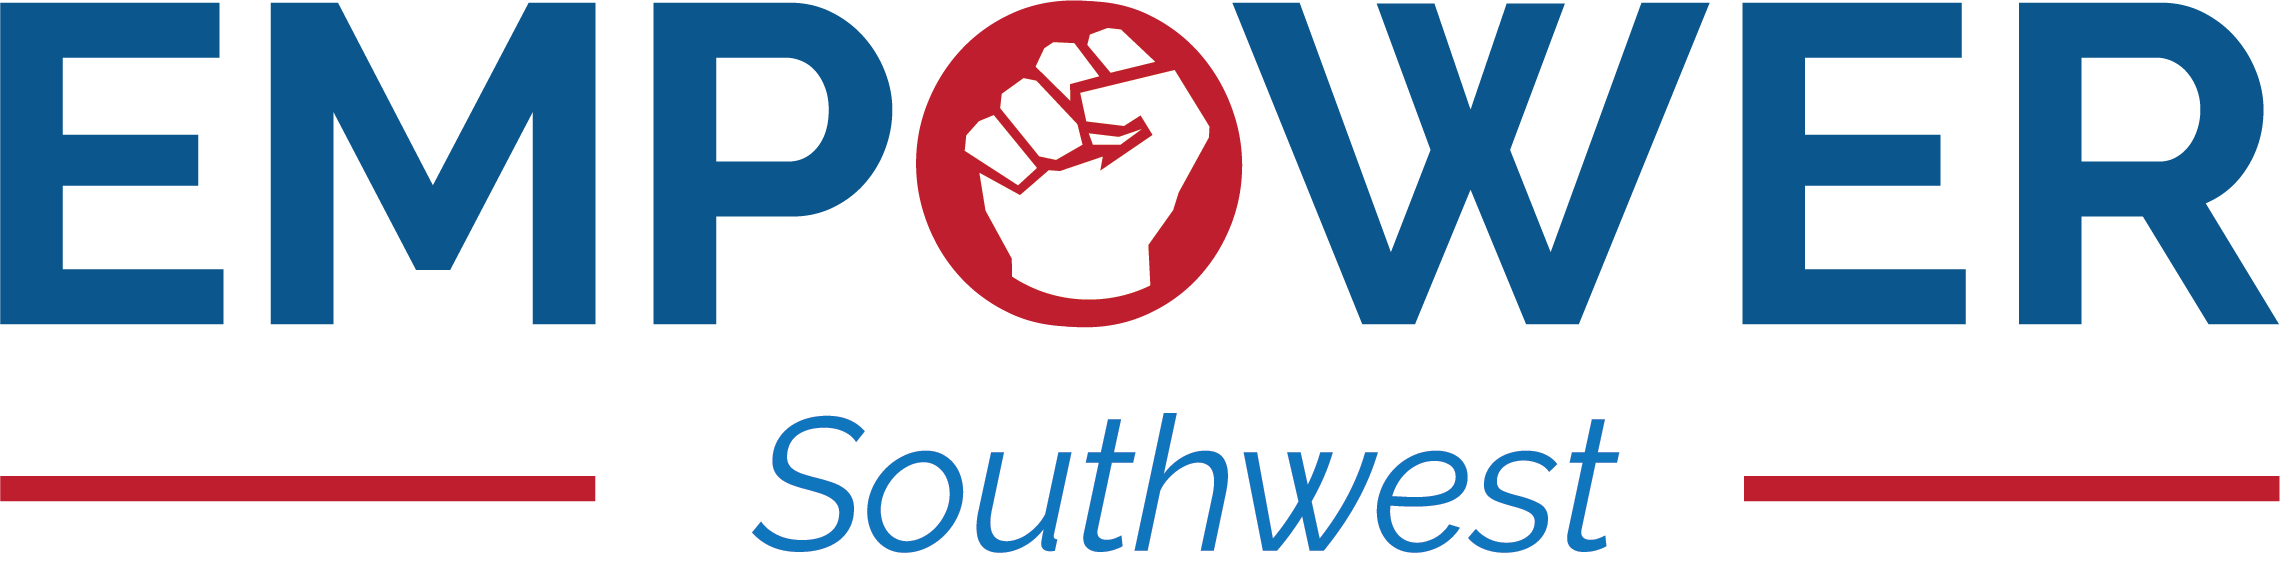 Empower Southwest